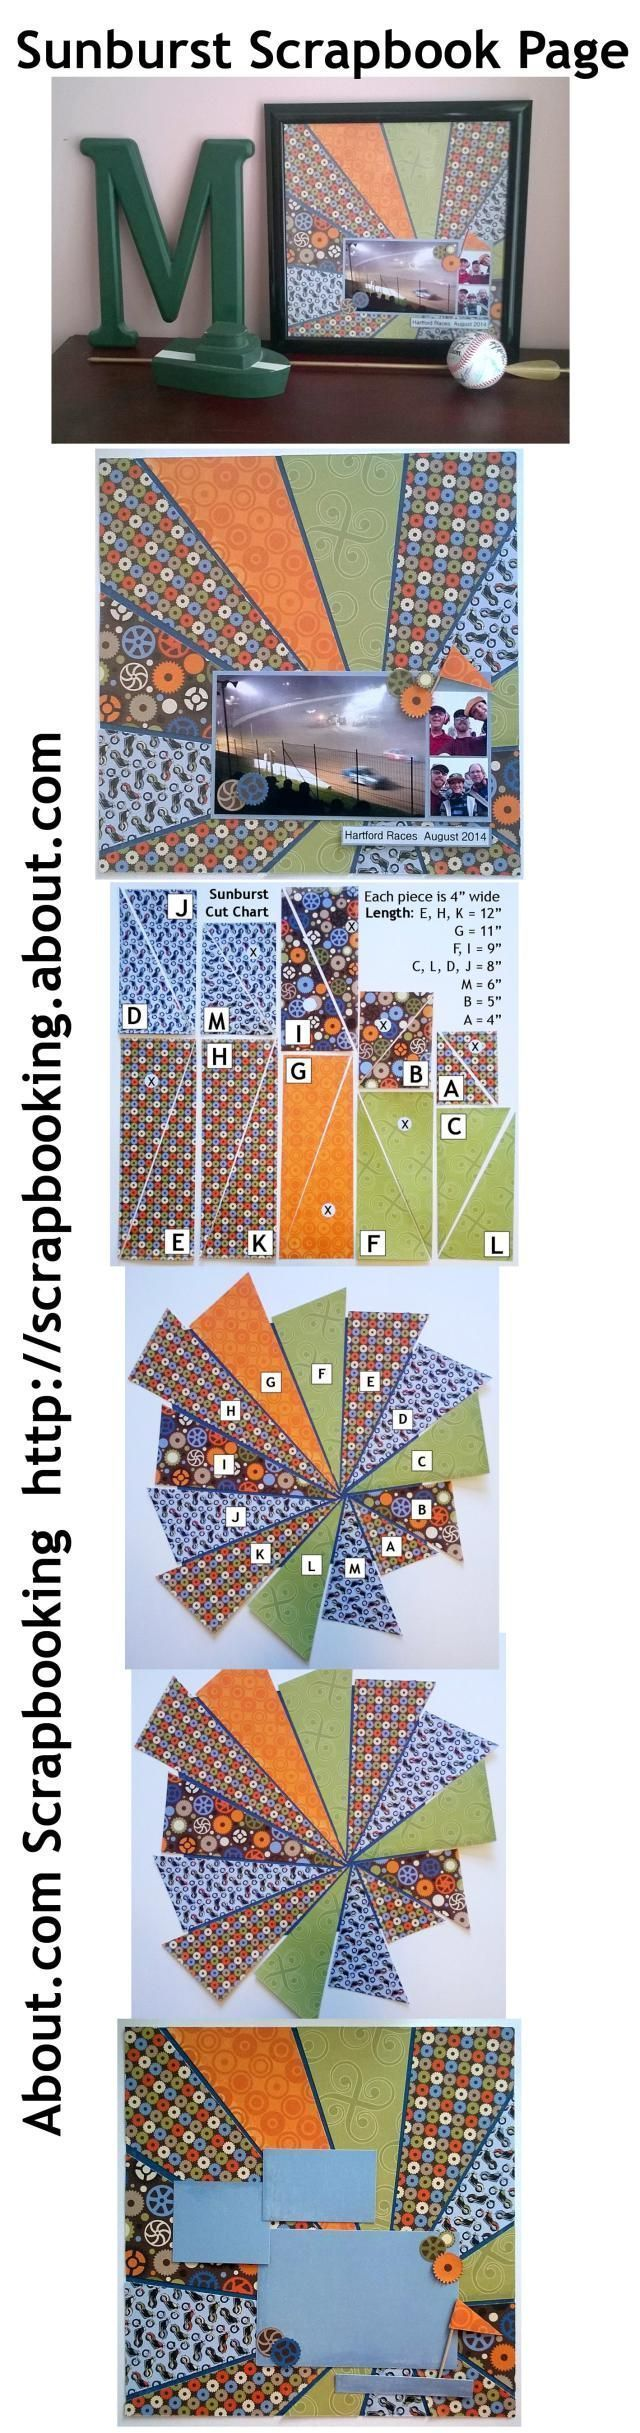 Sunburst Scrapbook Page Idea Using Boy Themed Patterned Paper: Pin It! Compiled Photos for Easy Pinning #scrapbooklayouts #scrapbooking101